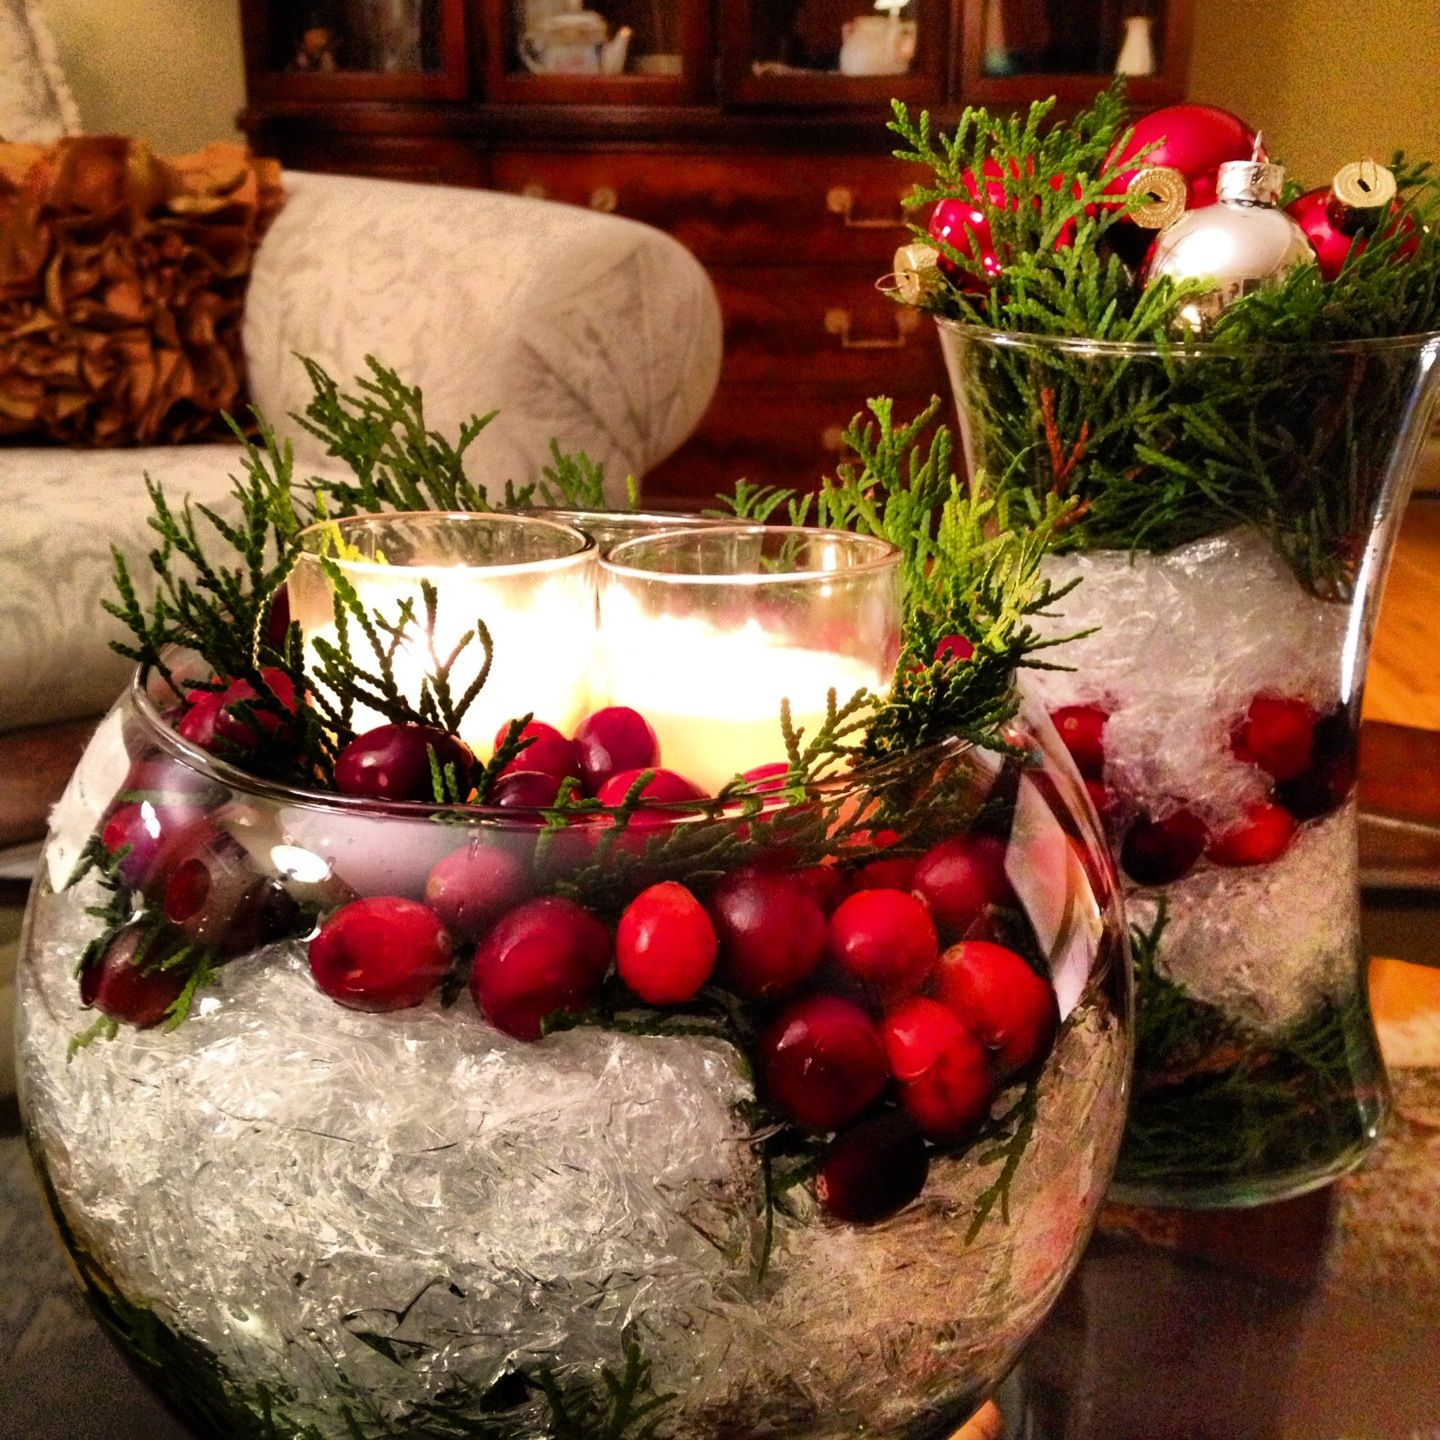 How to make christmas centerpieces with ice - Christmas Centerpieces Such An Easy Project Glass Containers With Cuttings From One Of The